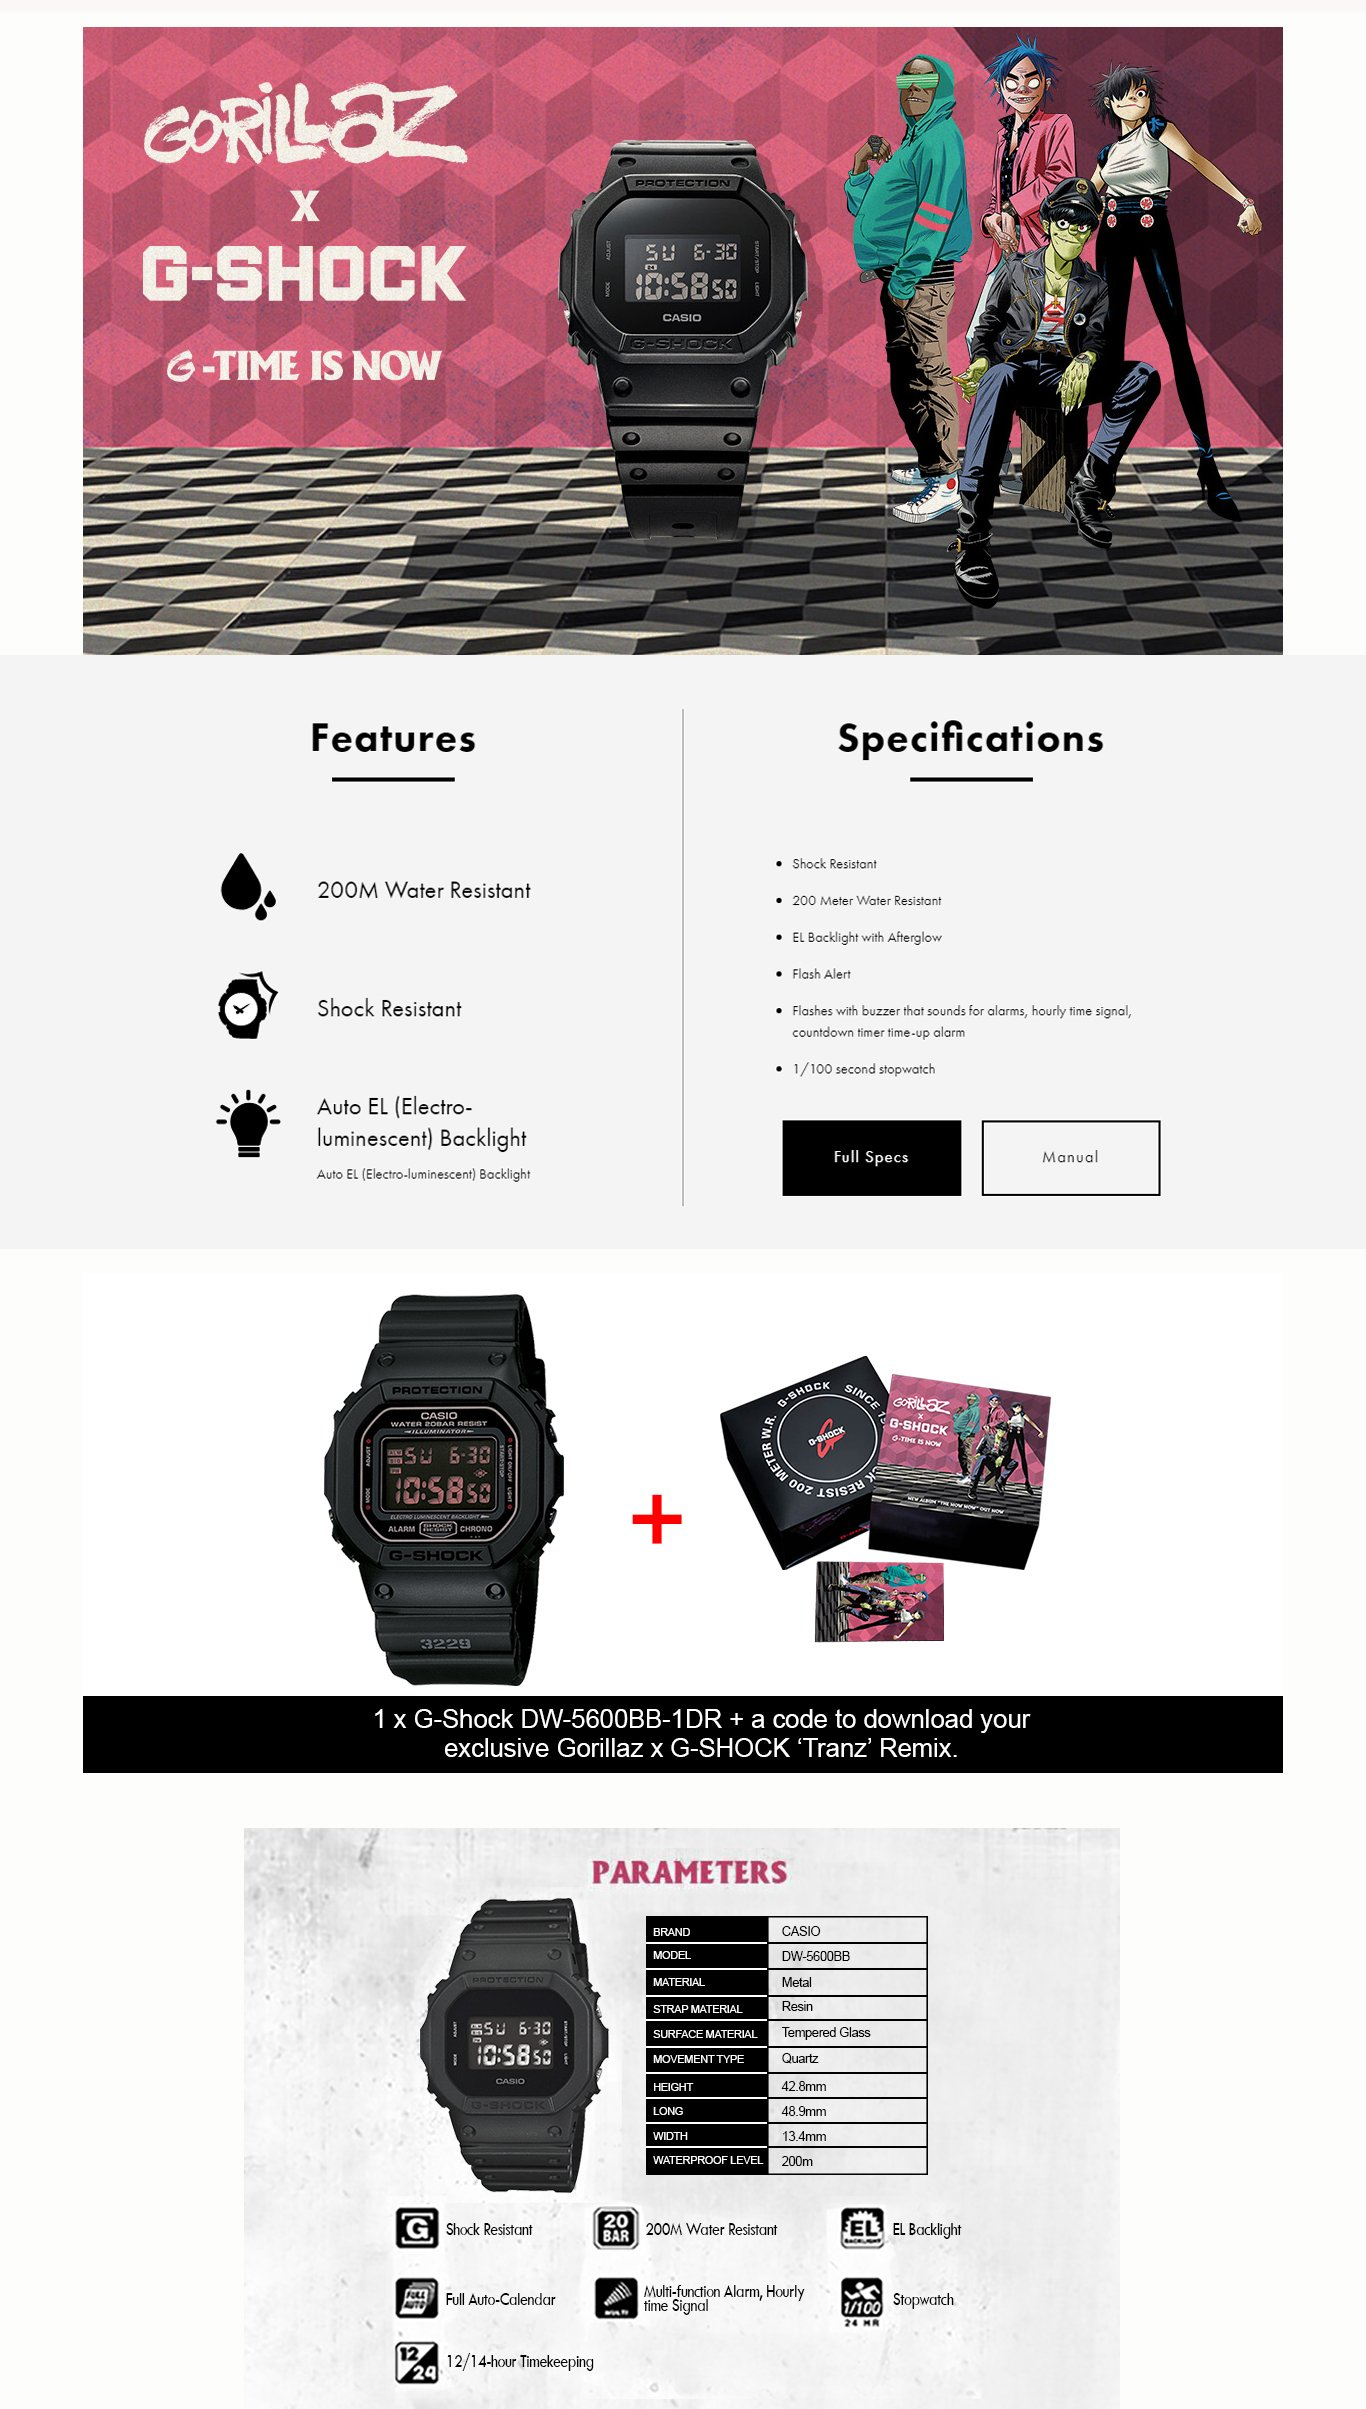 Casio-G-shock-DW-5600BB-1DR-x-Gorillaz-Special-Edition-Box-malaysia-authorized-retailer-forexengineer-store-overview